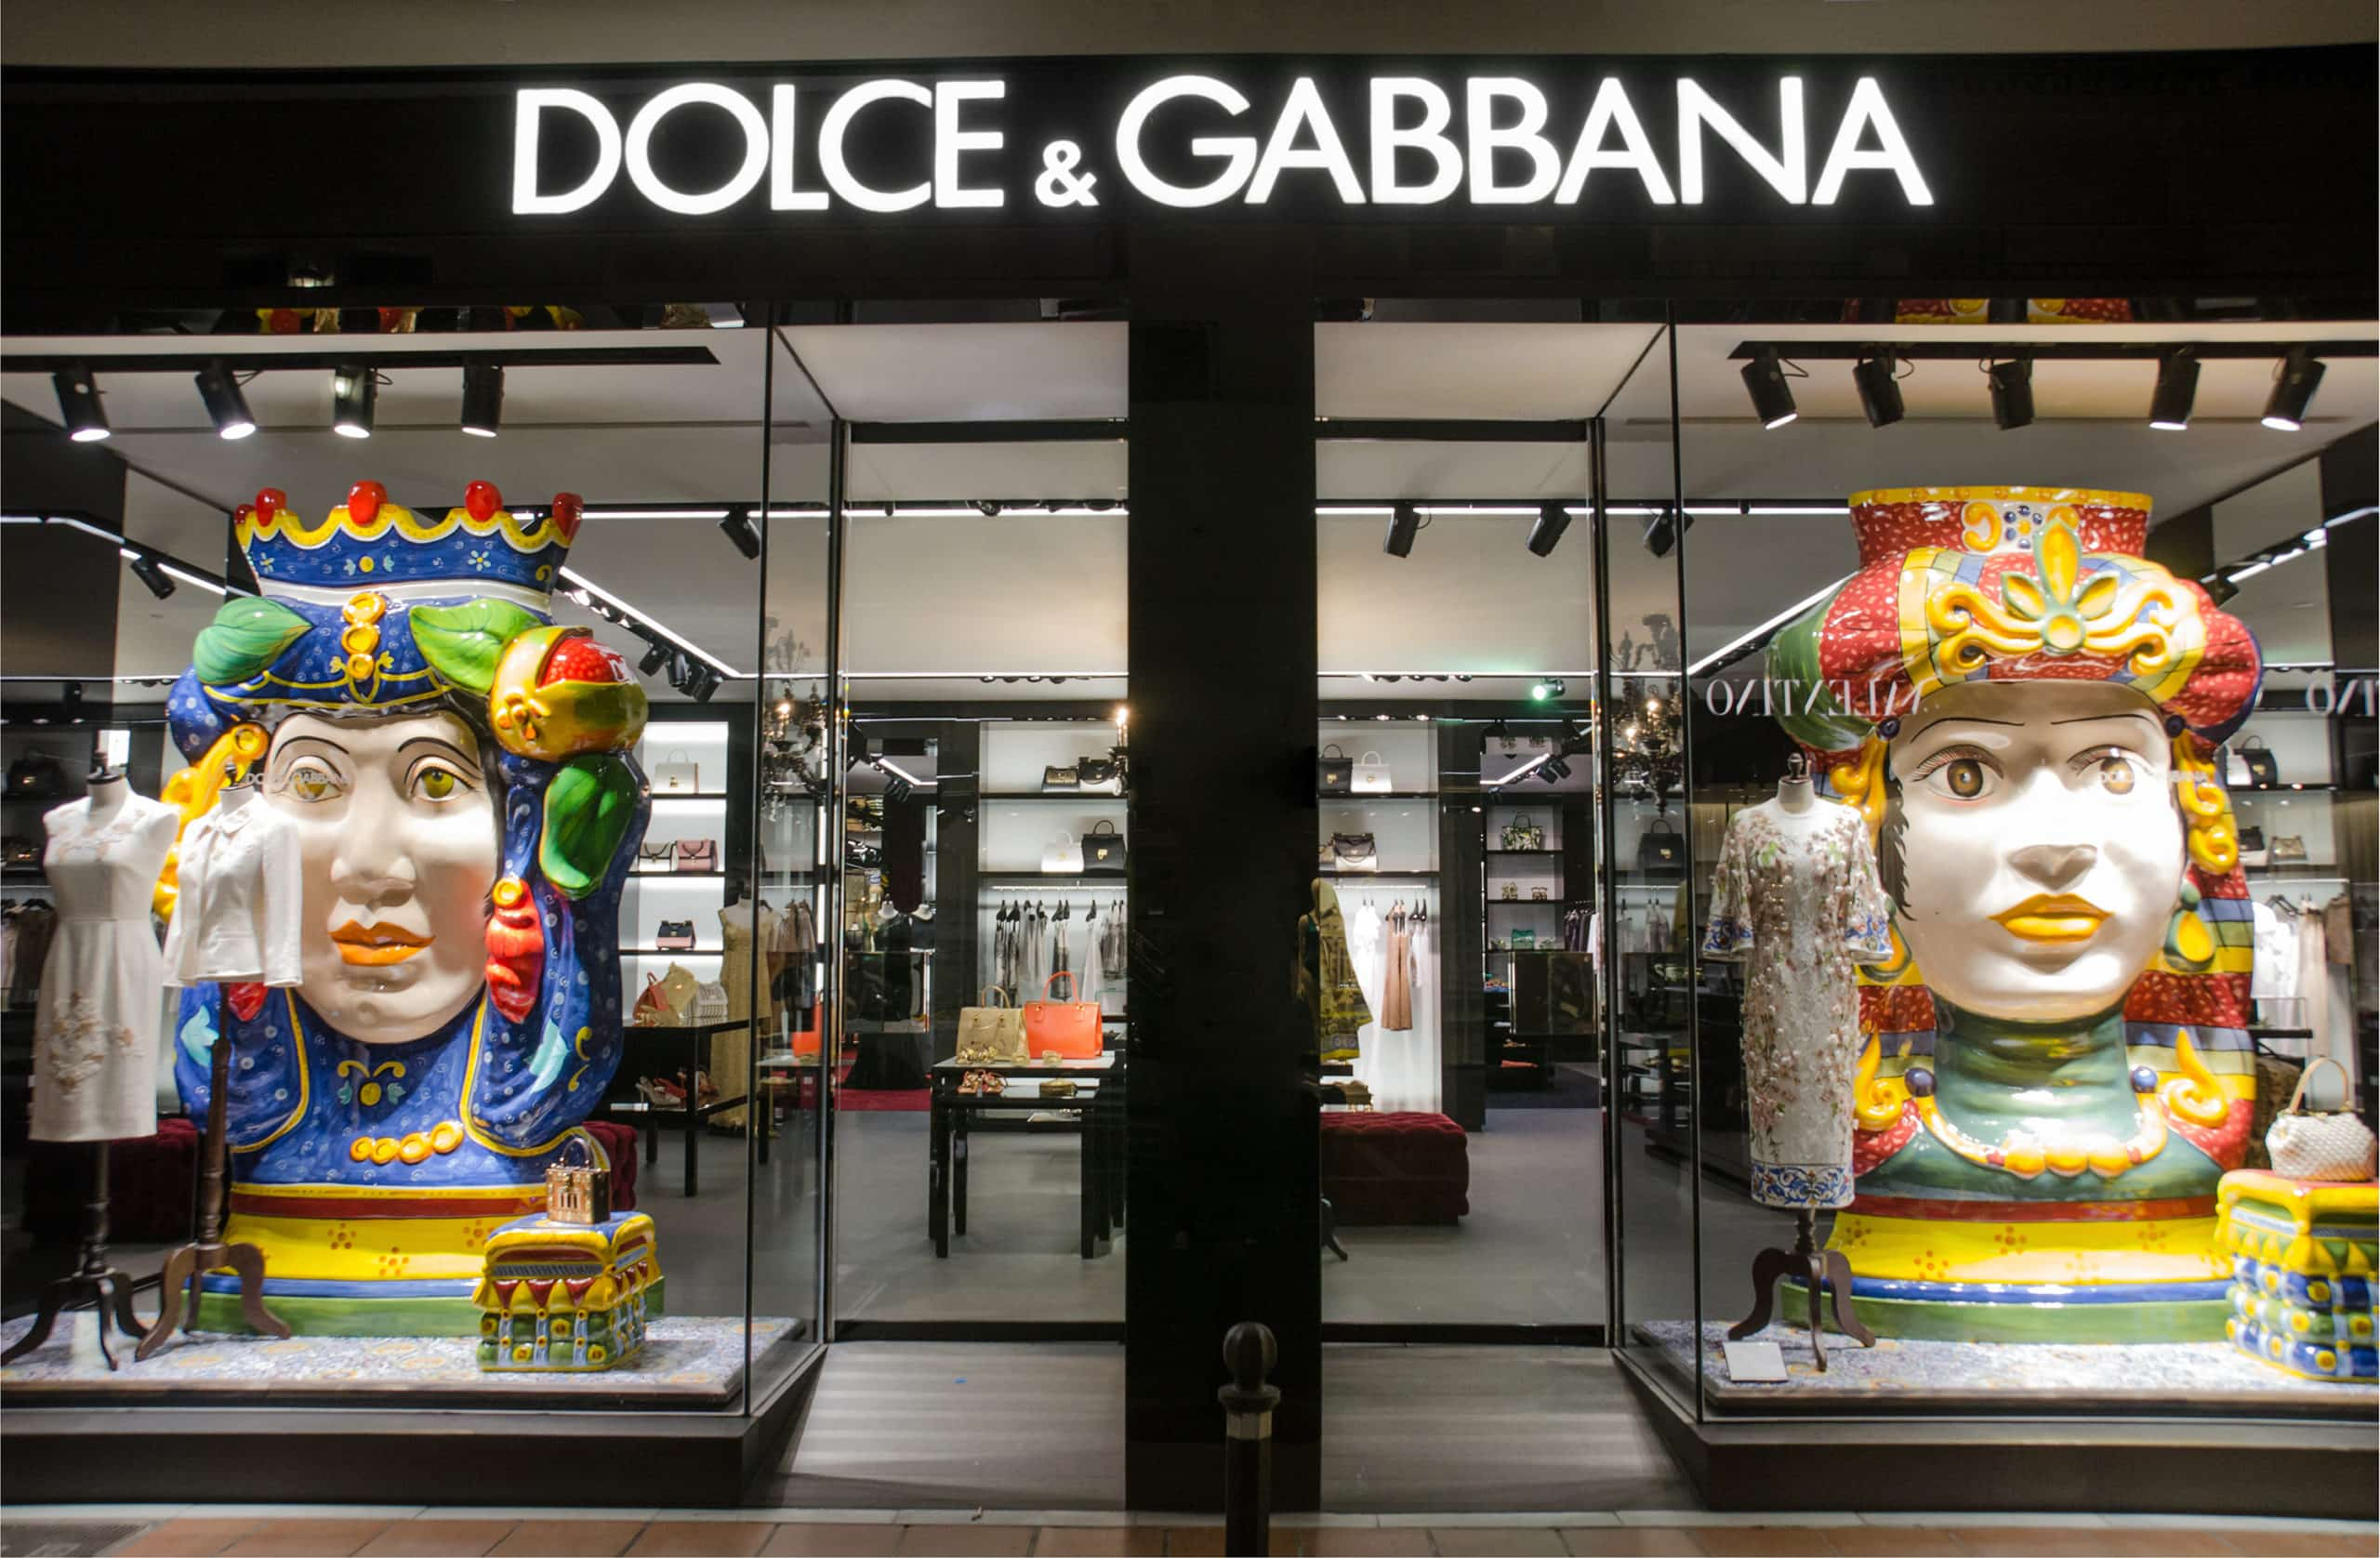 Dolce & Gabbana store in Puerto Banus, Marbella, Spain. Is an Italian luxury industry fashion house. The company was started by Italian designers Domenico Dolce and Stefano Gabbana.